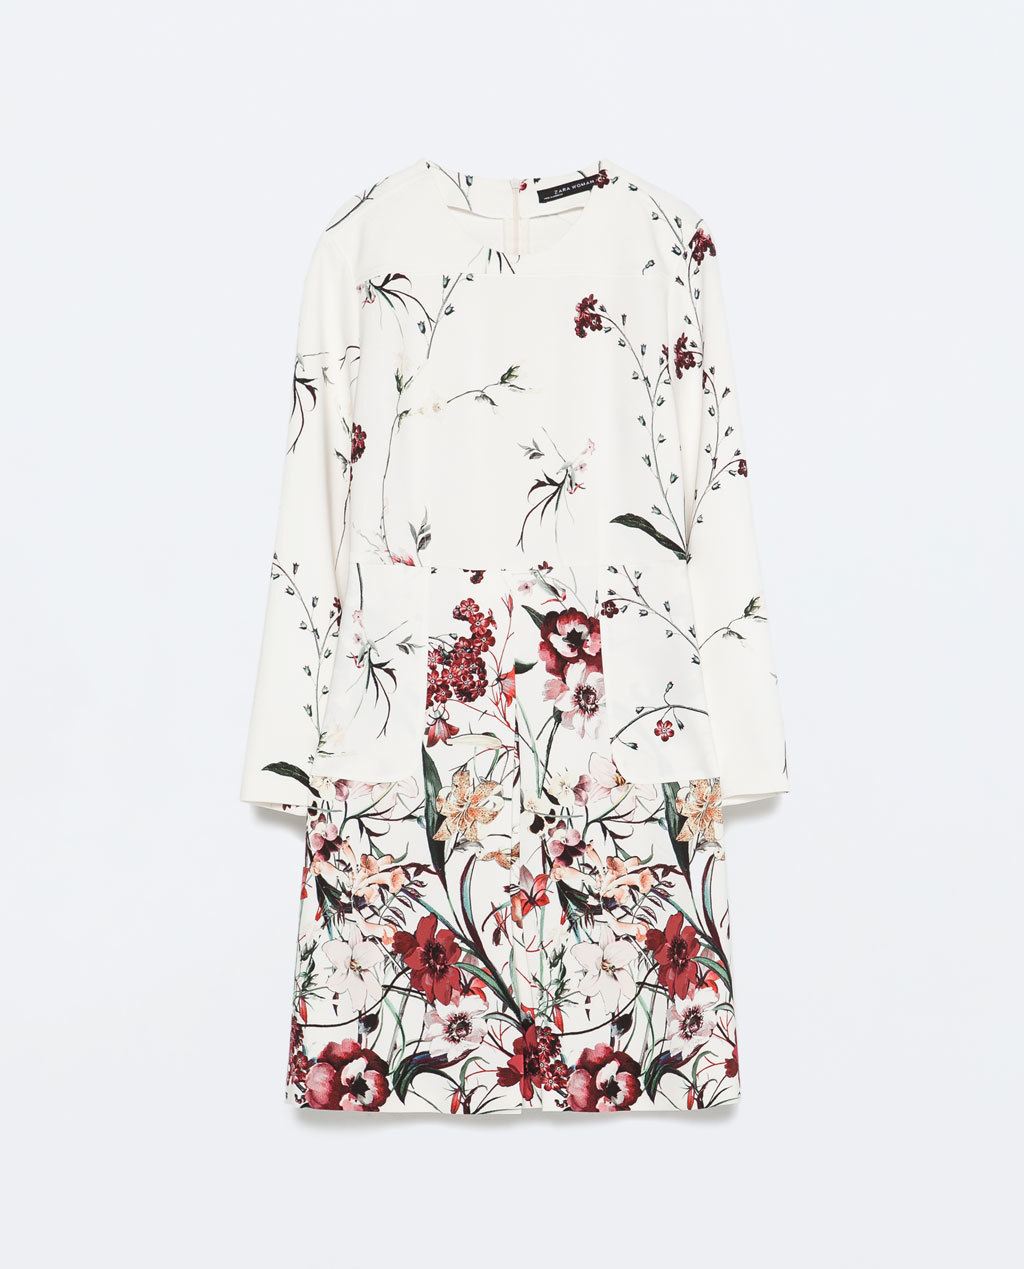 Printed Front Pleat Dress With Pocket - style: shift; length: mid thigh; predominant colour: white; fit: soft a-line; neckline: collarstand; sleeve length: long sleeve; sleeve style: standard; pattern type: fabric; pattern: florals; texture group: woven light midweight; occasions: creative work; season: s/s 2015